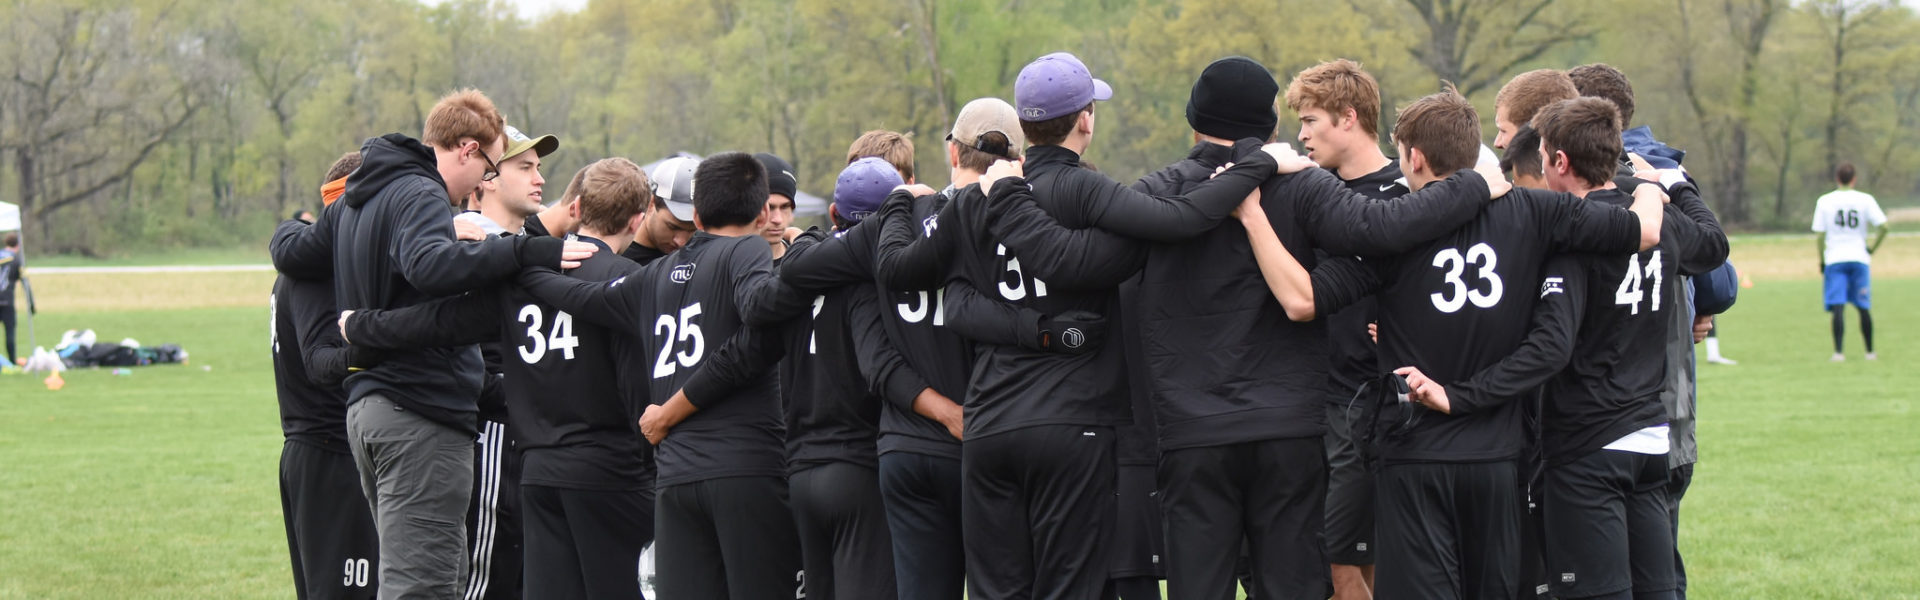 Northwestern Ultimate Team (NUT)